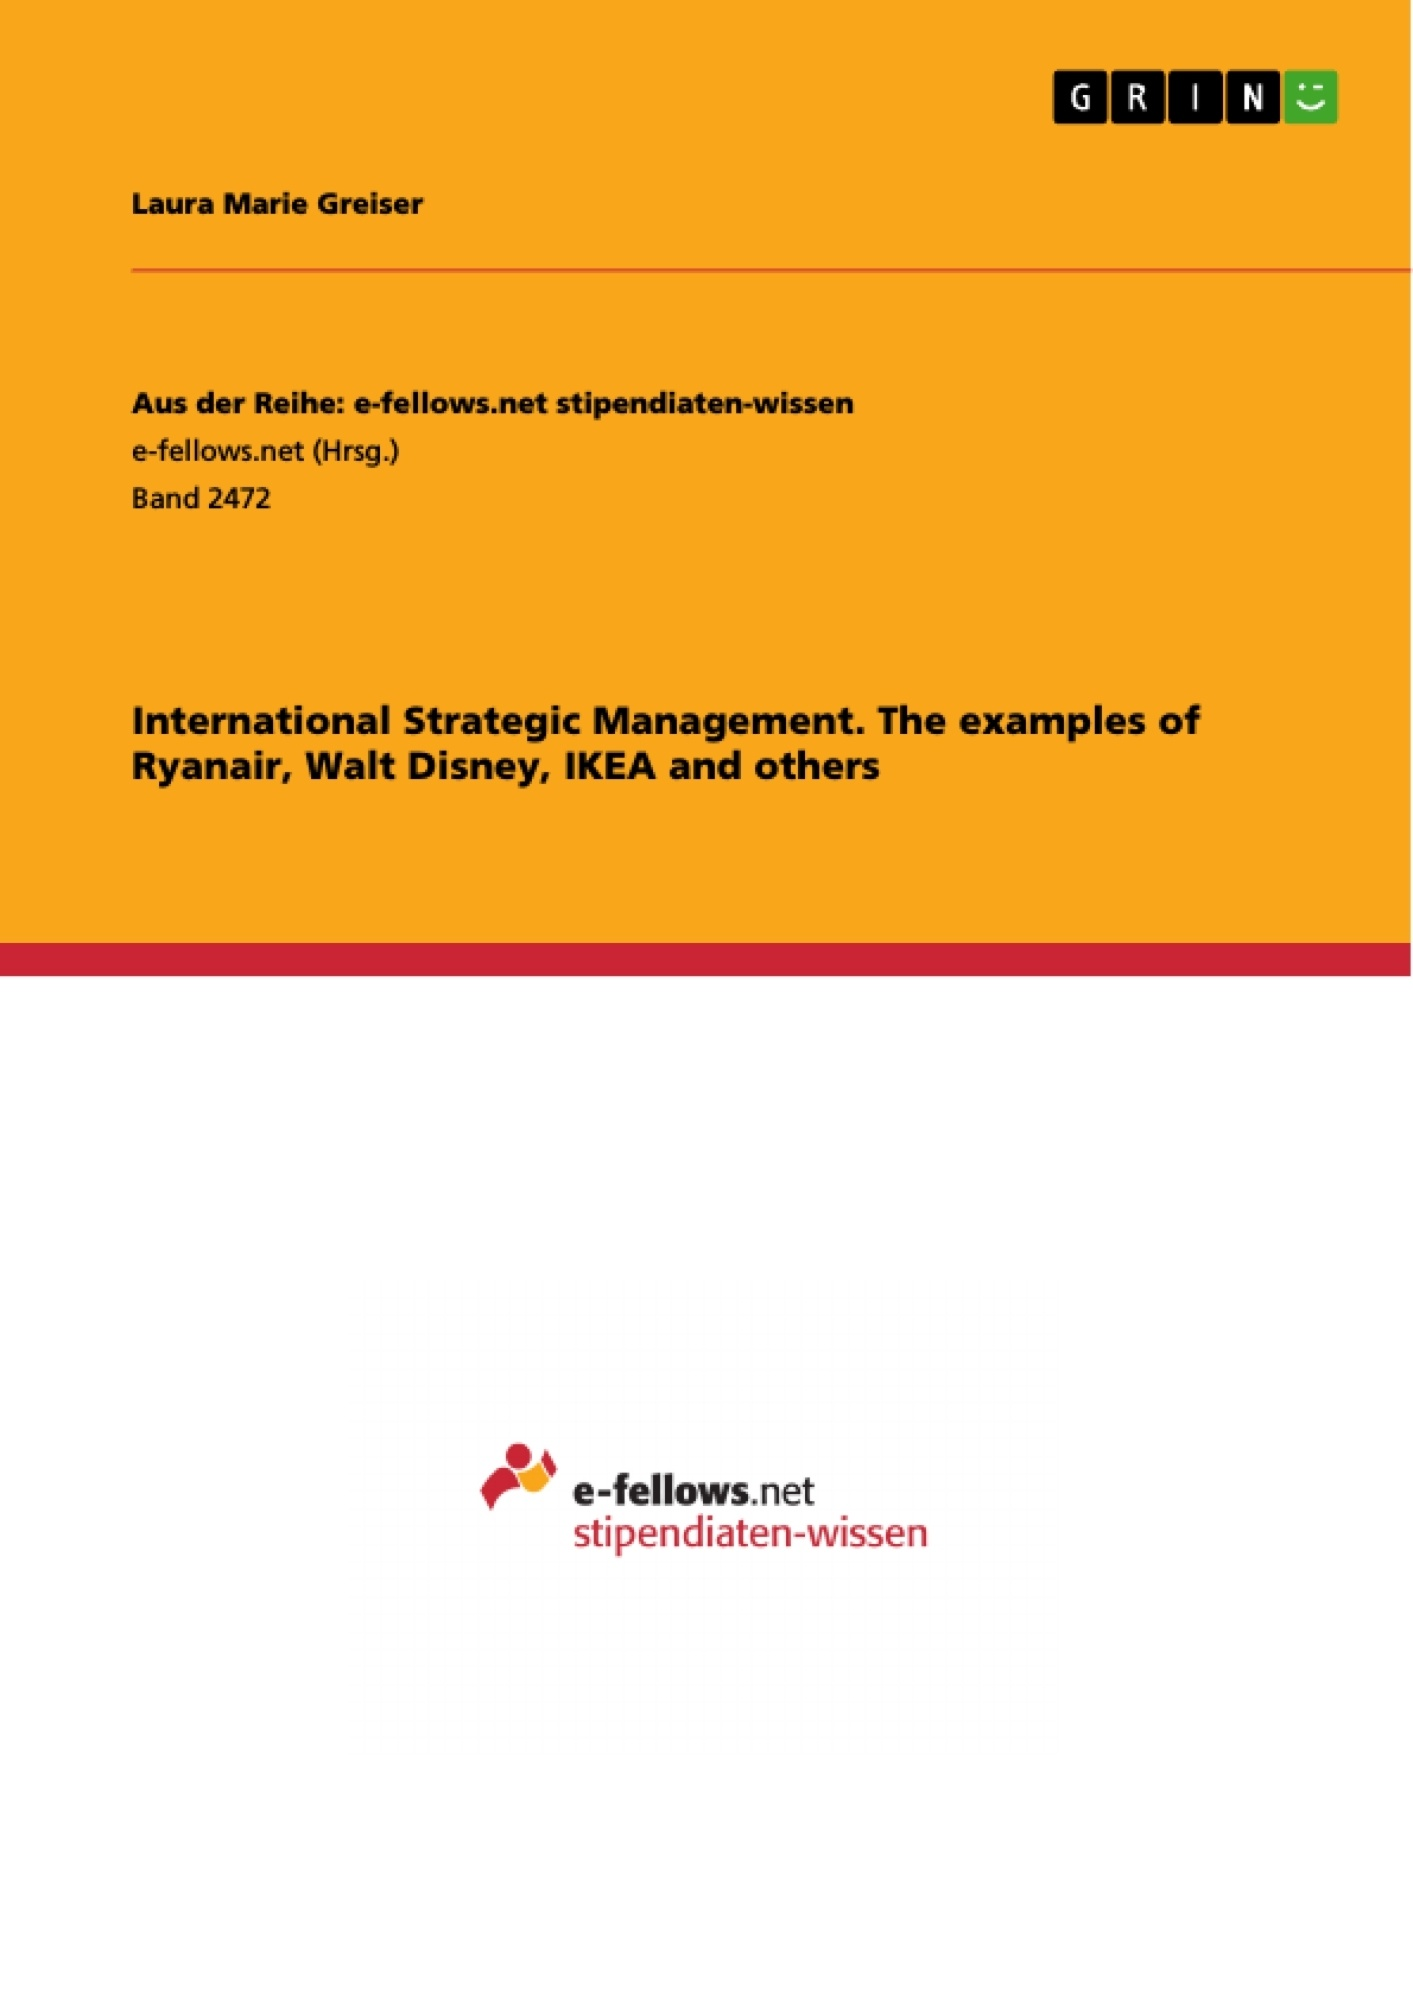 Title: International Strategic Management. The examples of Ryanair, Walt Disney, IKEA and others